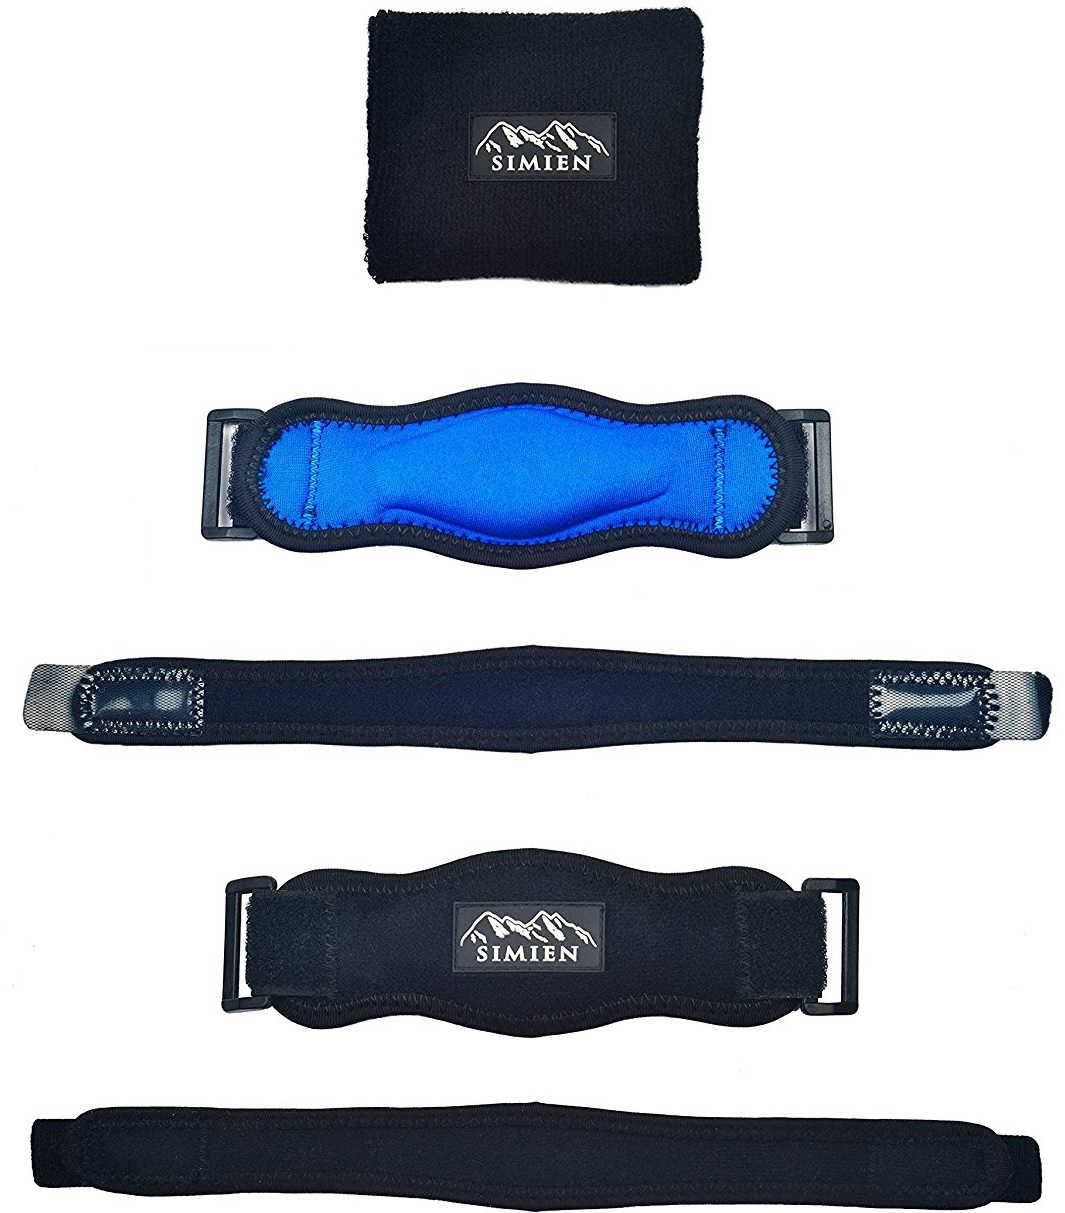 The Simien Tennis Elbow Brace